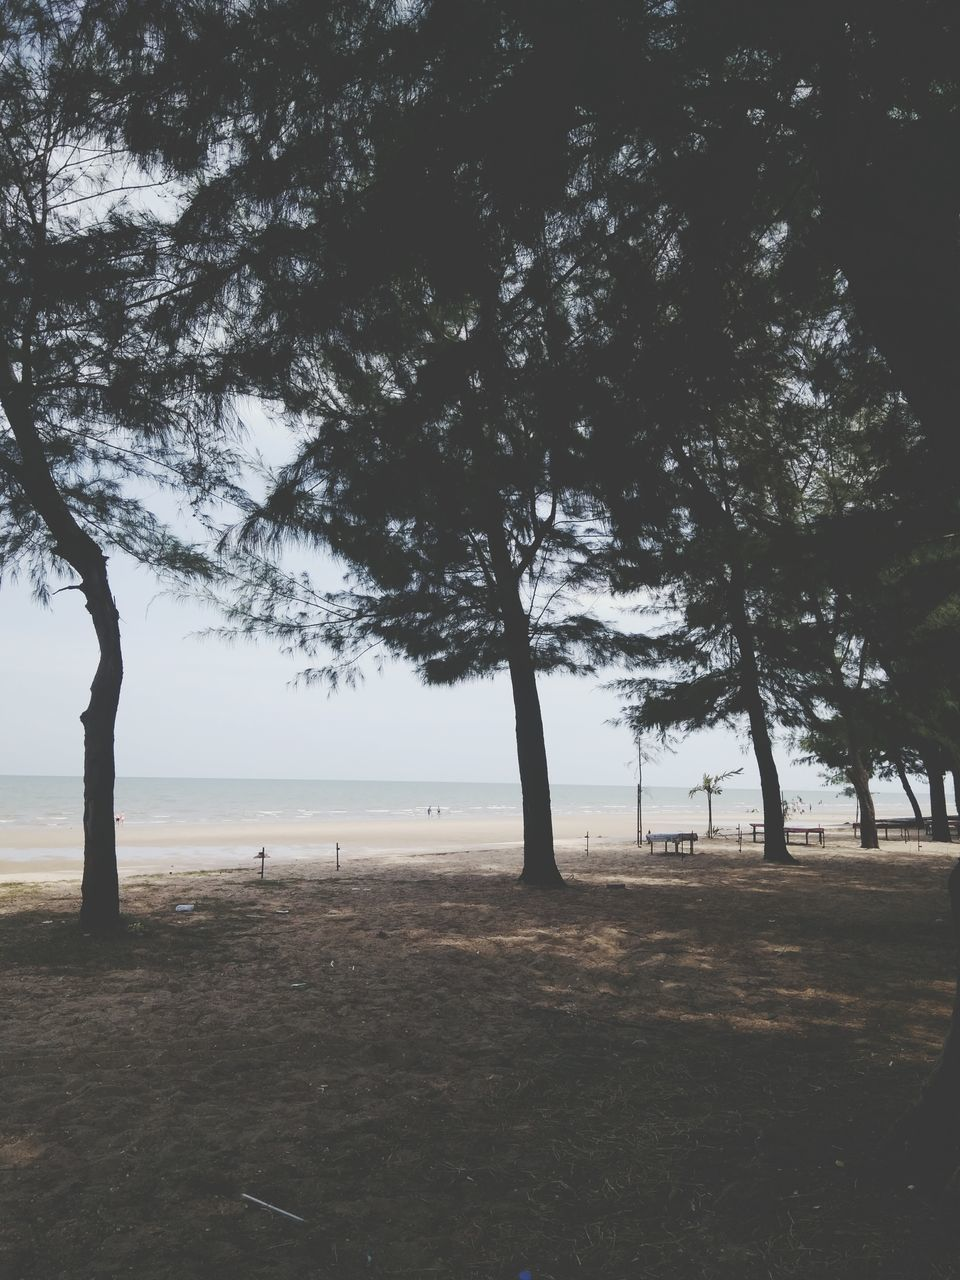 tree, nature, tranquility, tranquil scene, scenics, landscape, beauty in nature, outdoors, sea, tree trunk, day, growth, water, beach, no people, branch, grass, sky